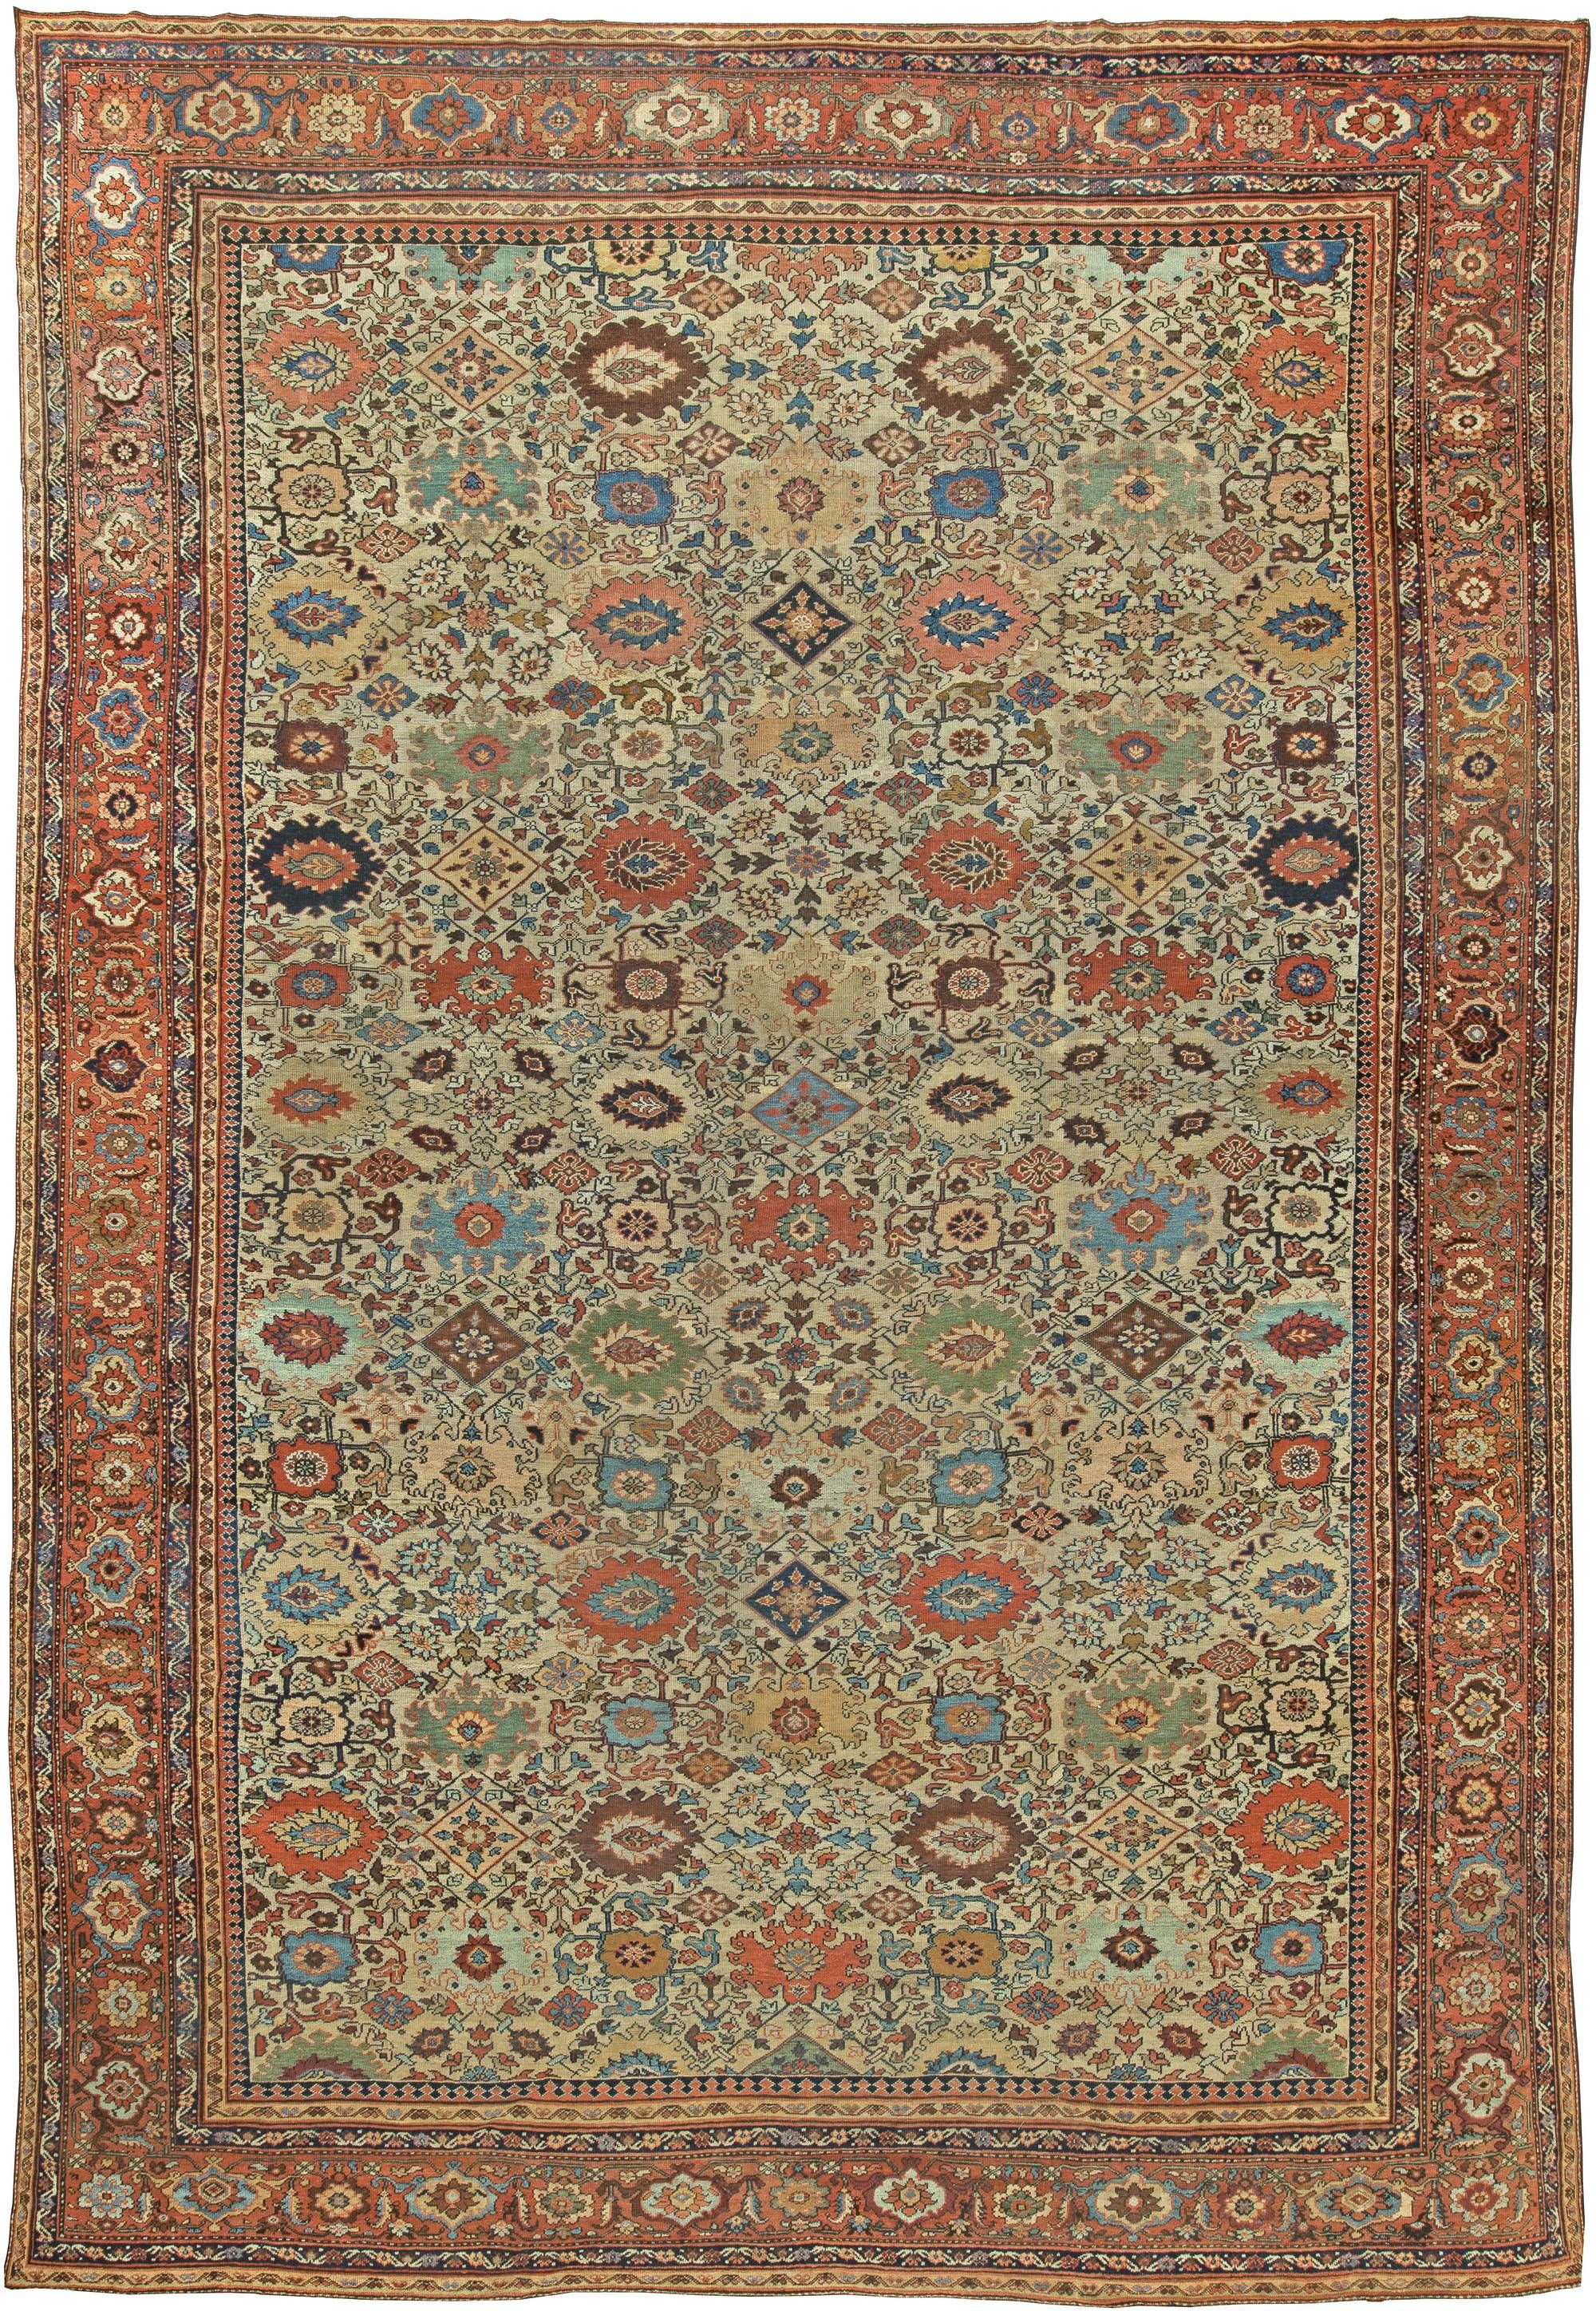 Types Of Antique Rugs For Making Your Home Beautiful Anlamli Net In 2020 Antique Rugs Rugs Round Carpets